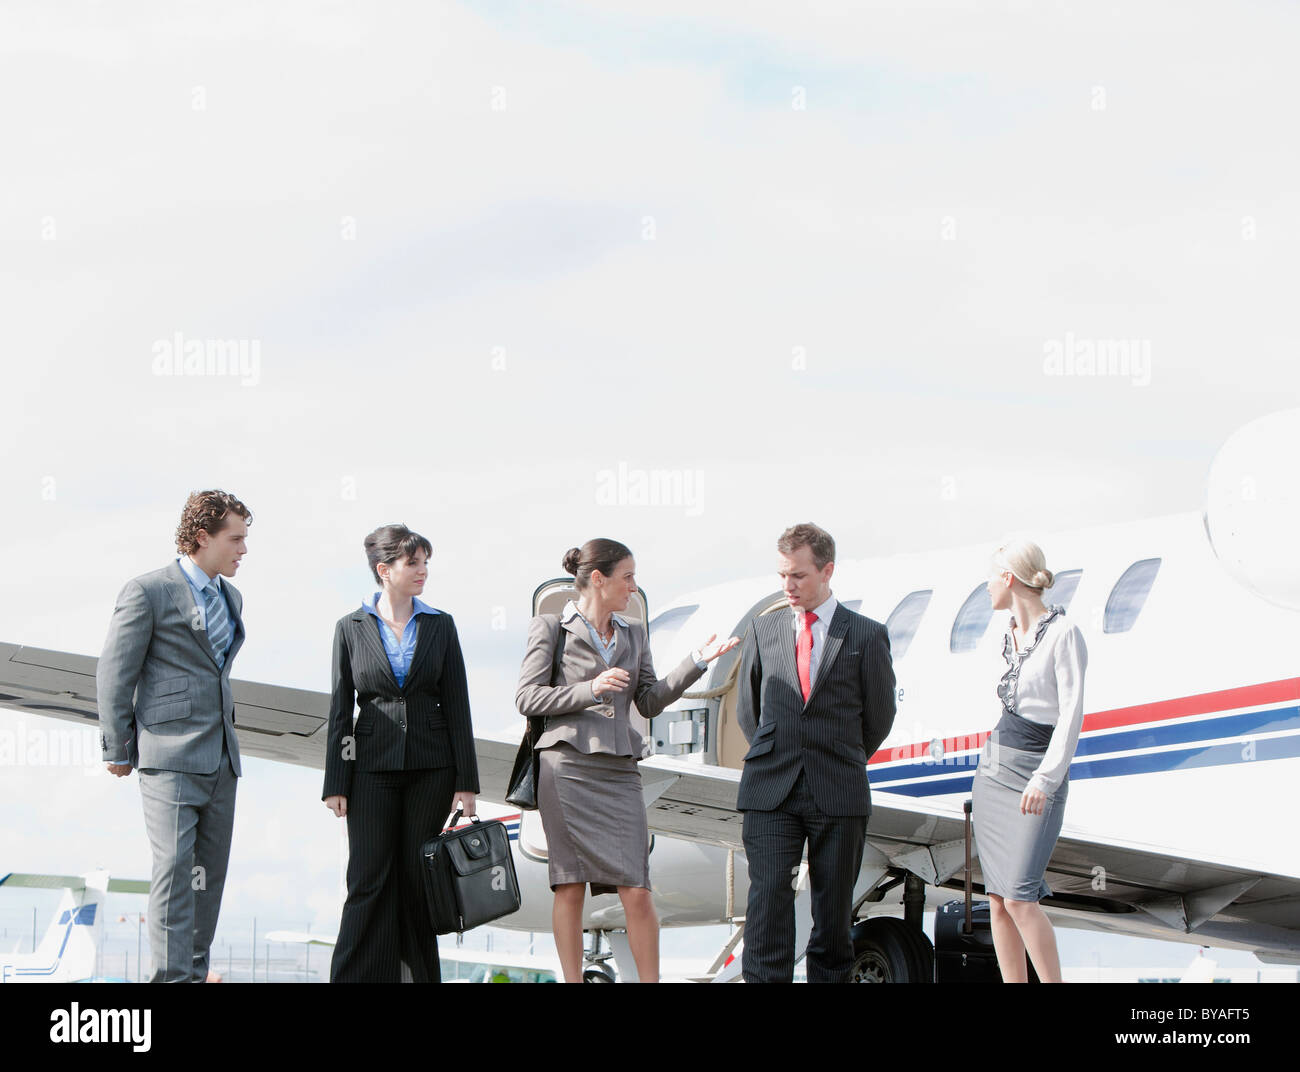 Group of business executives - Stock Image